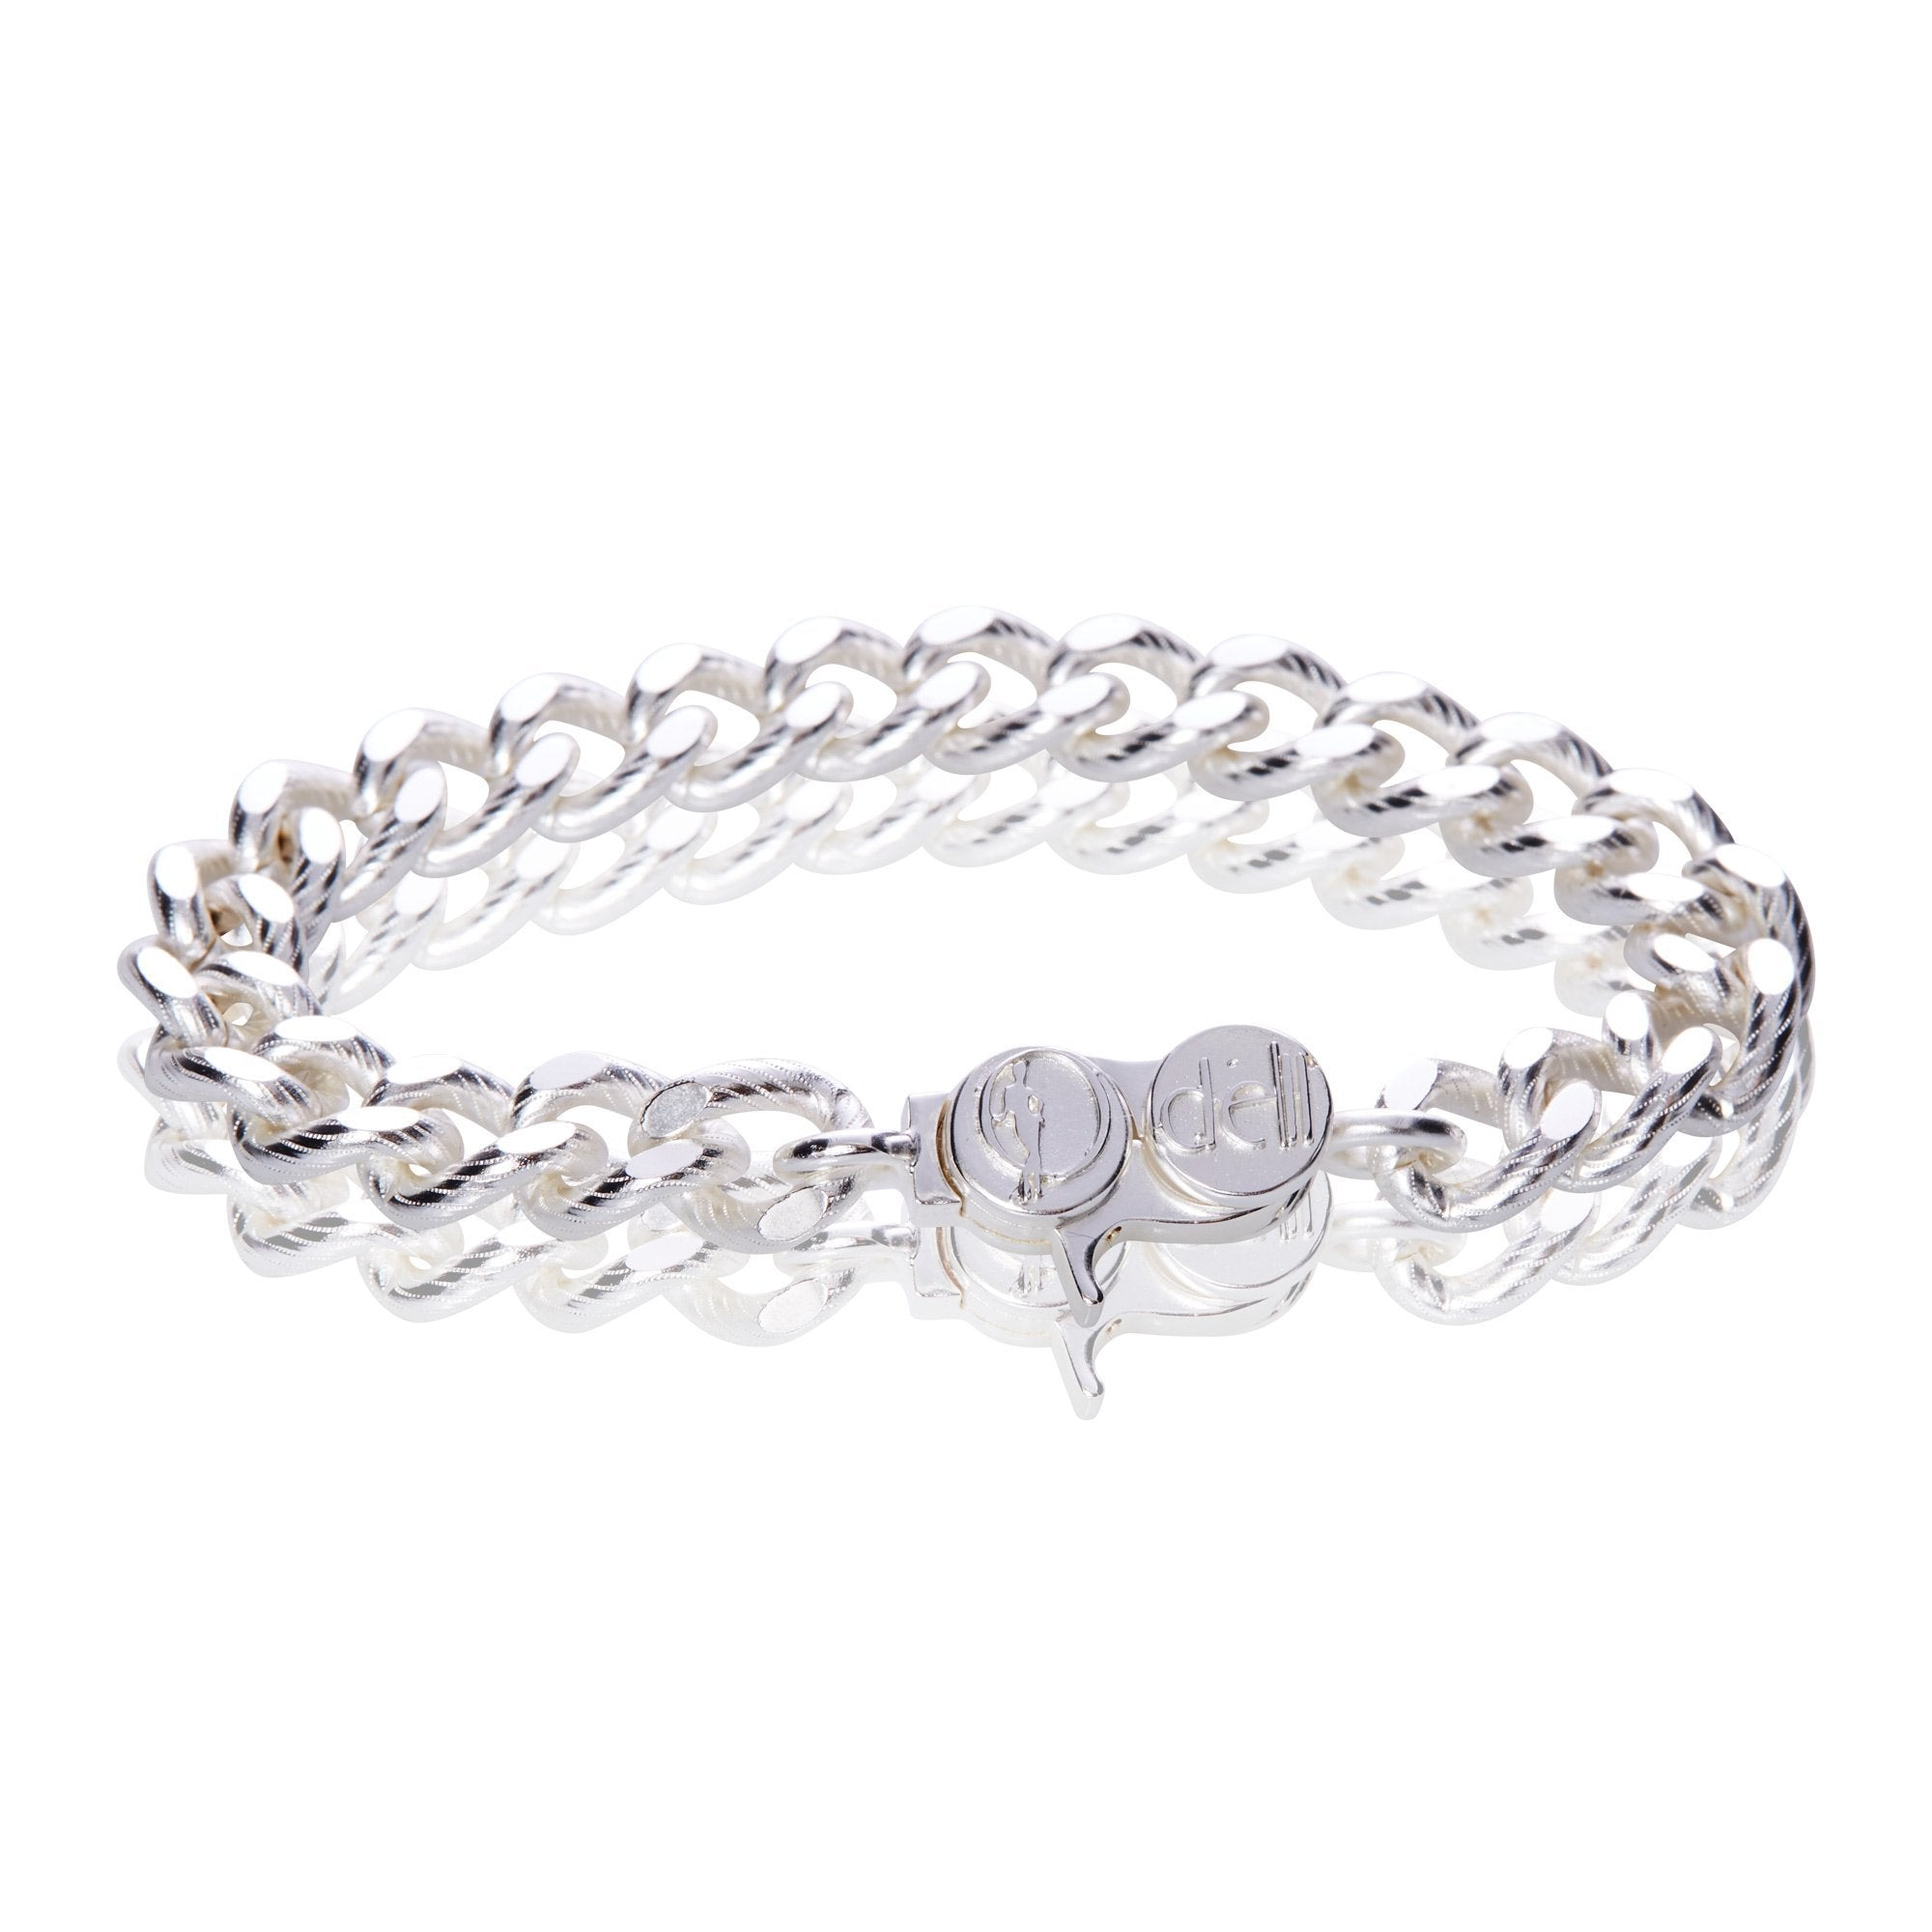 Signature Silver Fancy Textured Cable Chain Bracelet